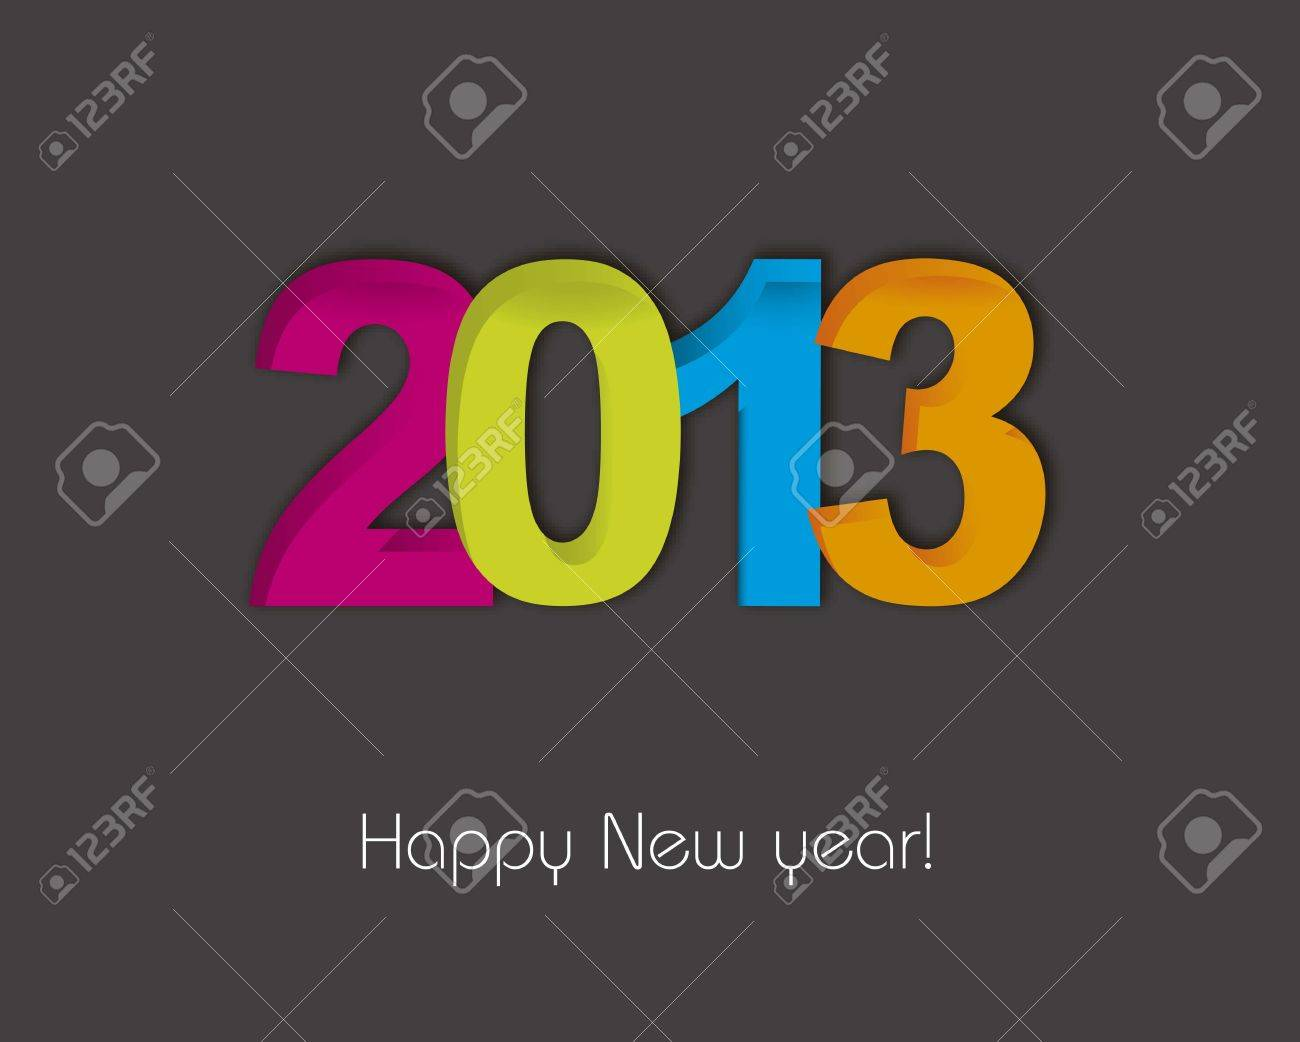 2013 new year over gray background illustration Stock Vector - 15068003